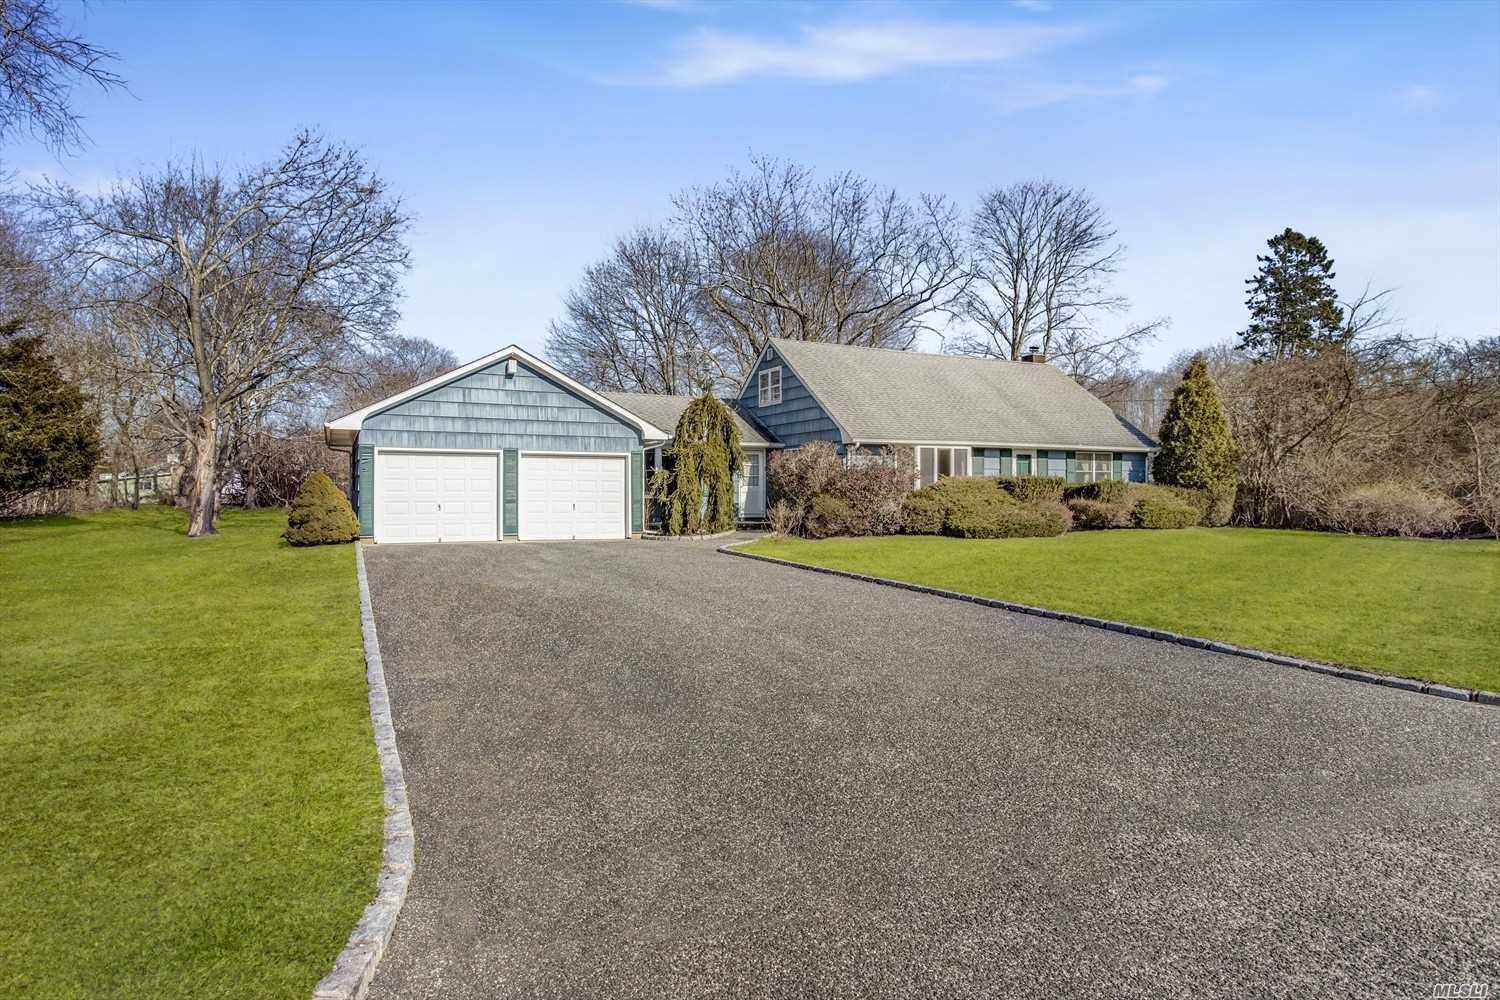 A Large Cape Cod On A Quiet Country Dead End Block, so close to the charming town it offers a lifestyle! This Home Has Many Upgrades and Beautifully Kept! Wood Floors Throughout, Quality Upgraded Custom Kitchen, Cac, Attached 2 Car Garage, and more. Lovely Yard With Ample Space to make your oasis. Room For Pool. A home not to be missed in your search!